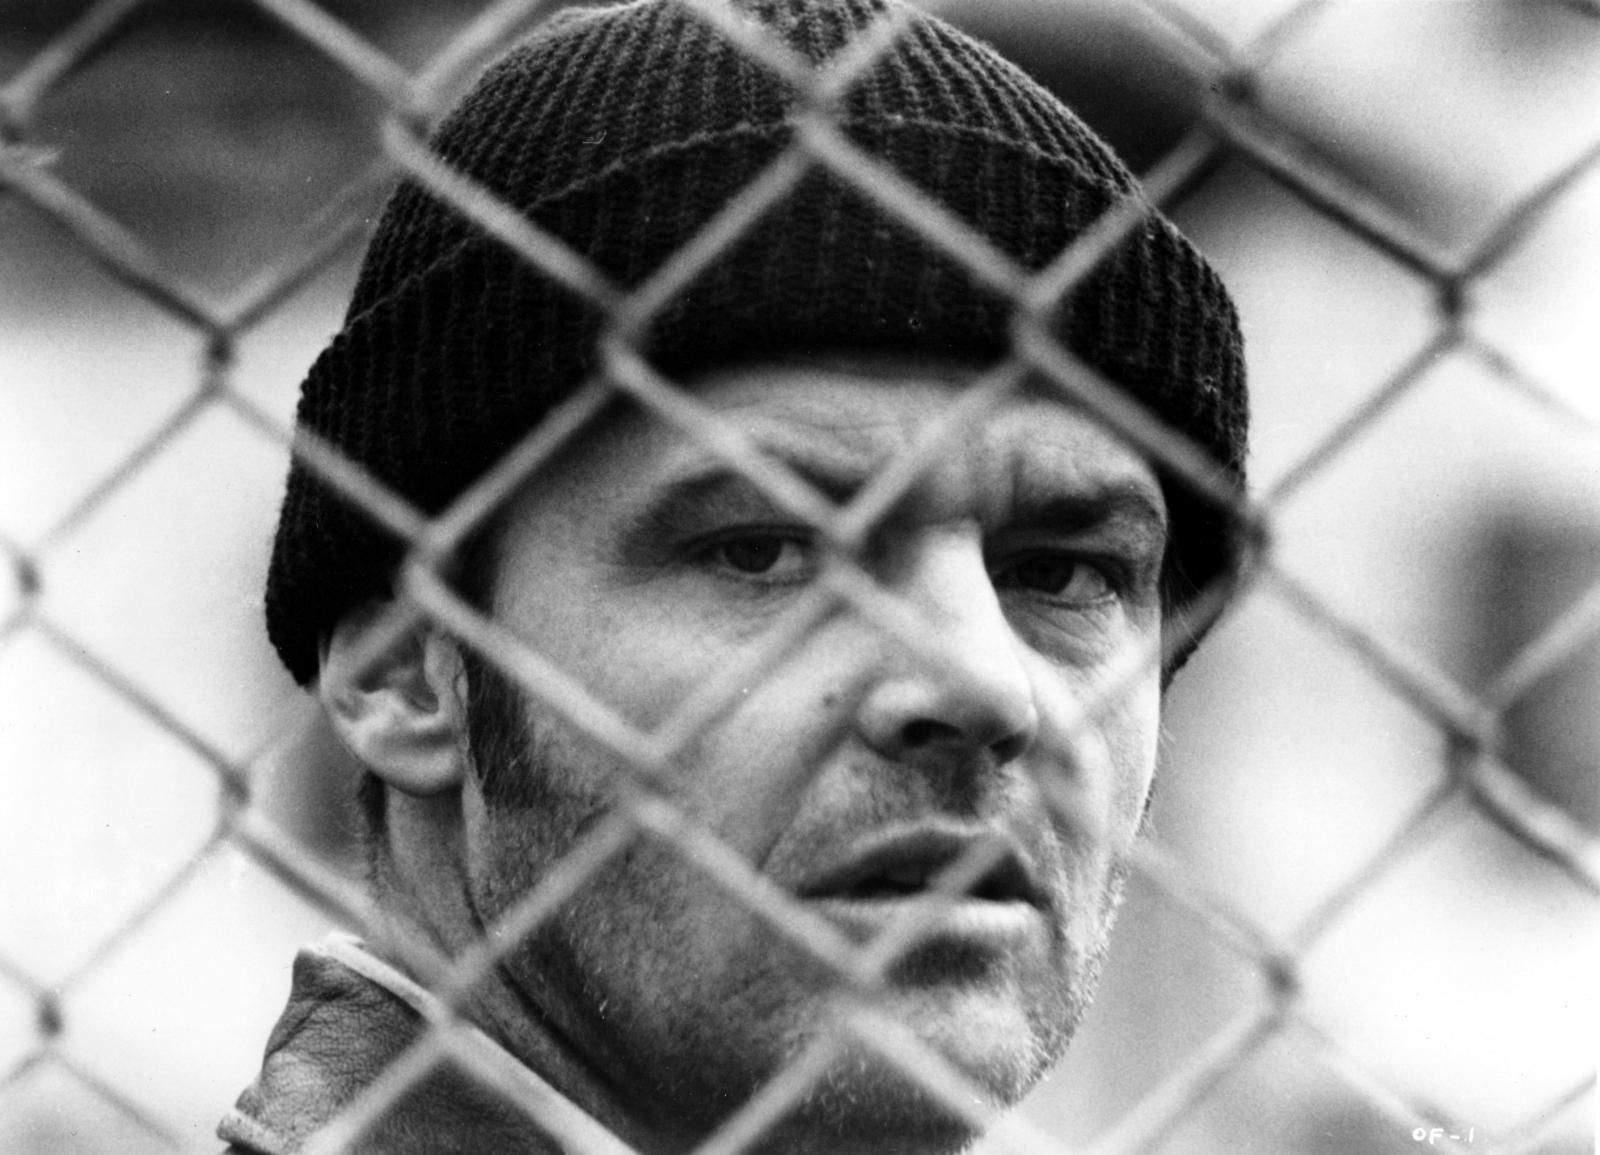 Is One Flew over the Cuckoo's Nest, Satire or Comedy?